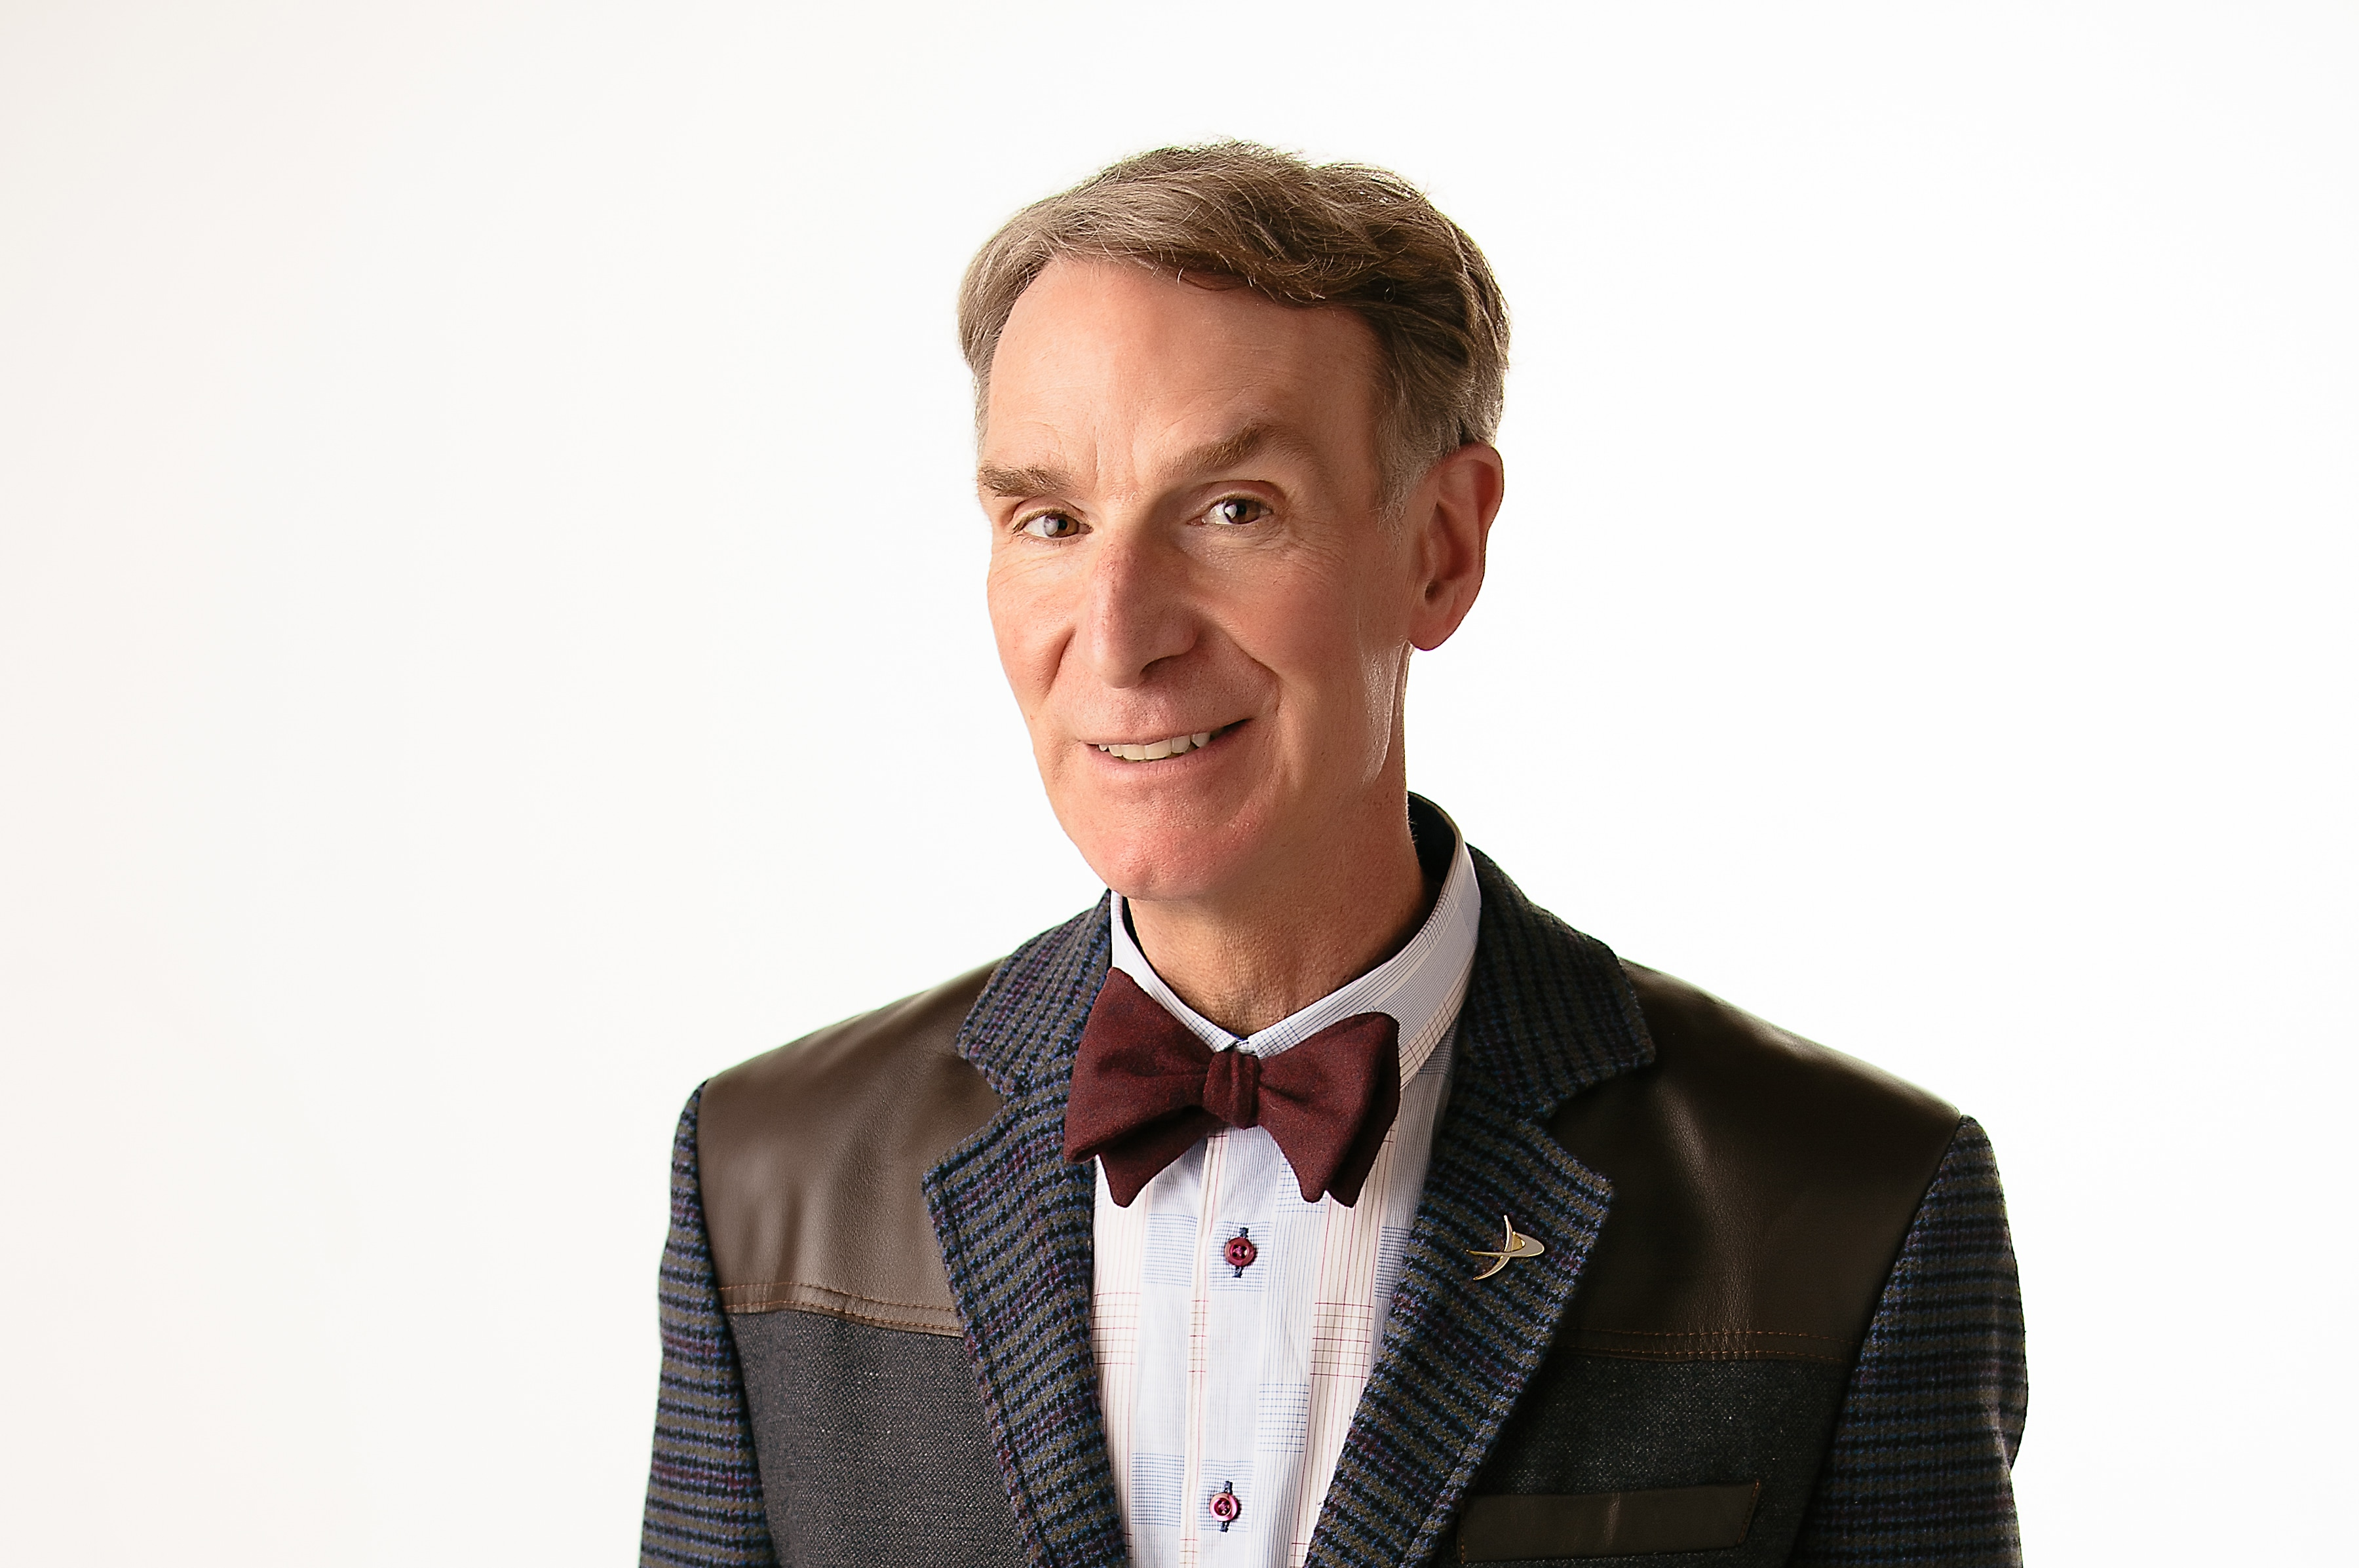 Just Asking The Science Guy Bill Nye Gets Hot